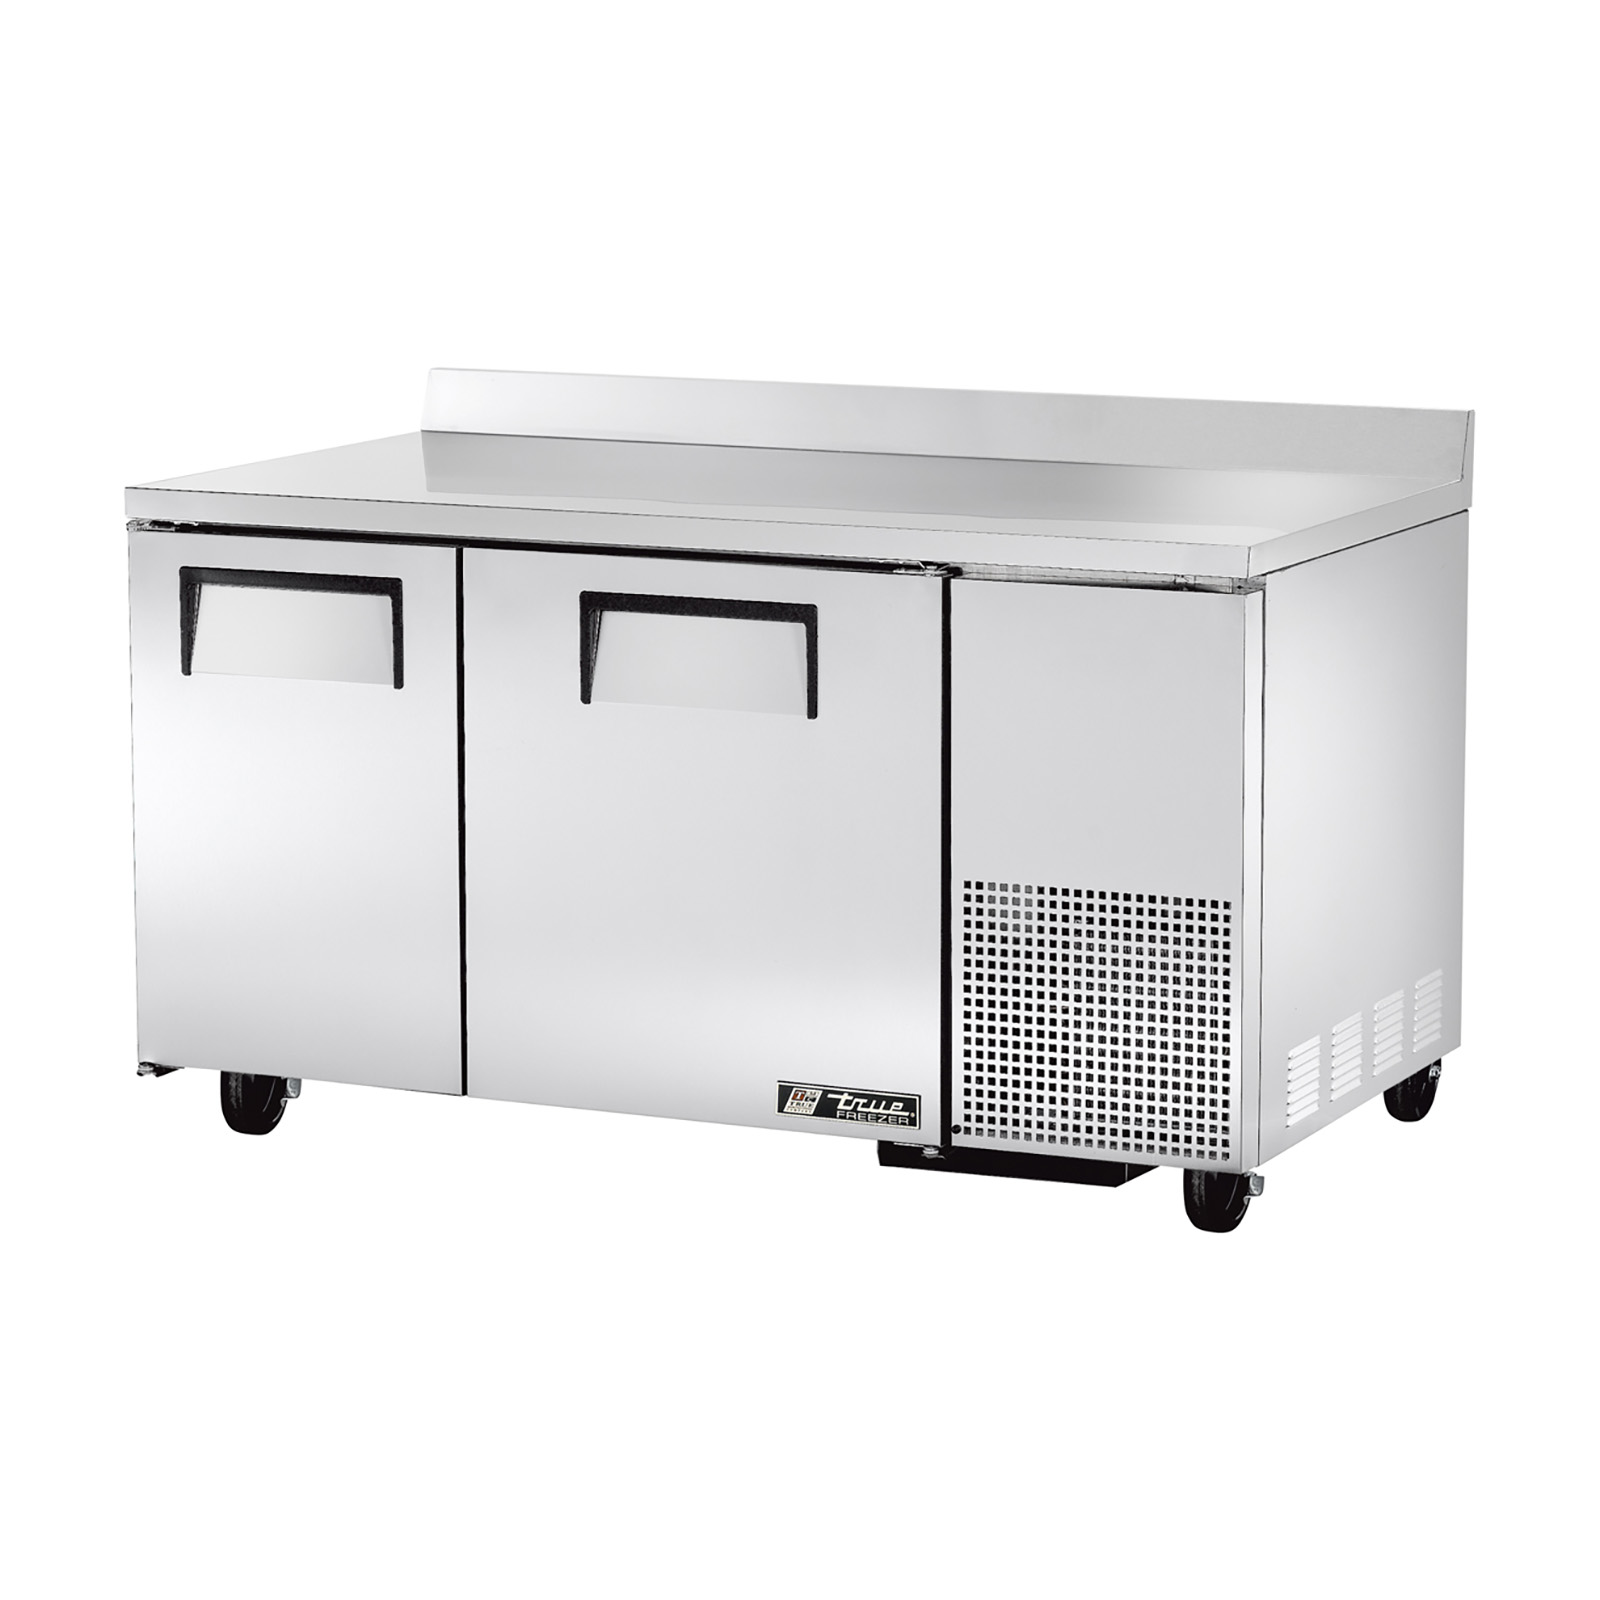 TWT-60-32F True - Deep Work Top Freezer two-section